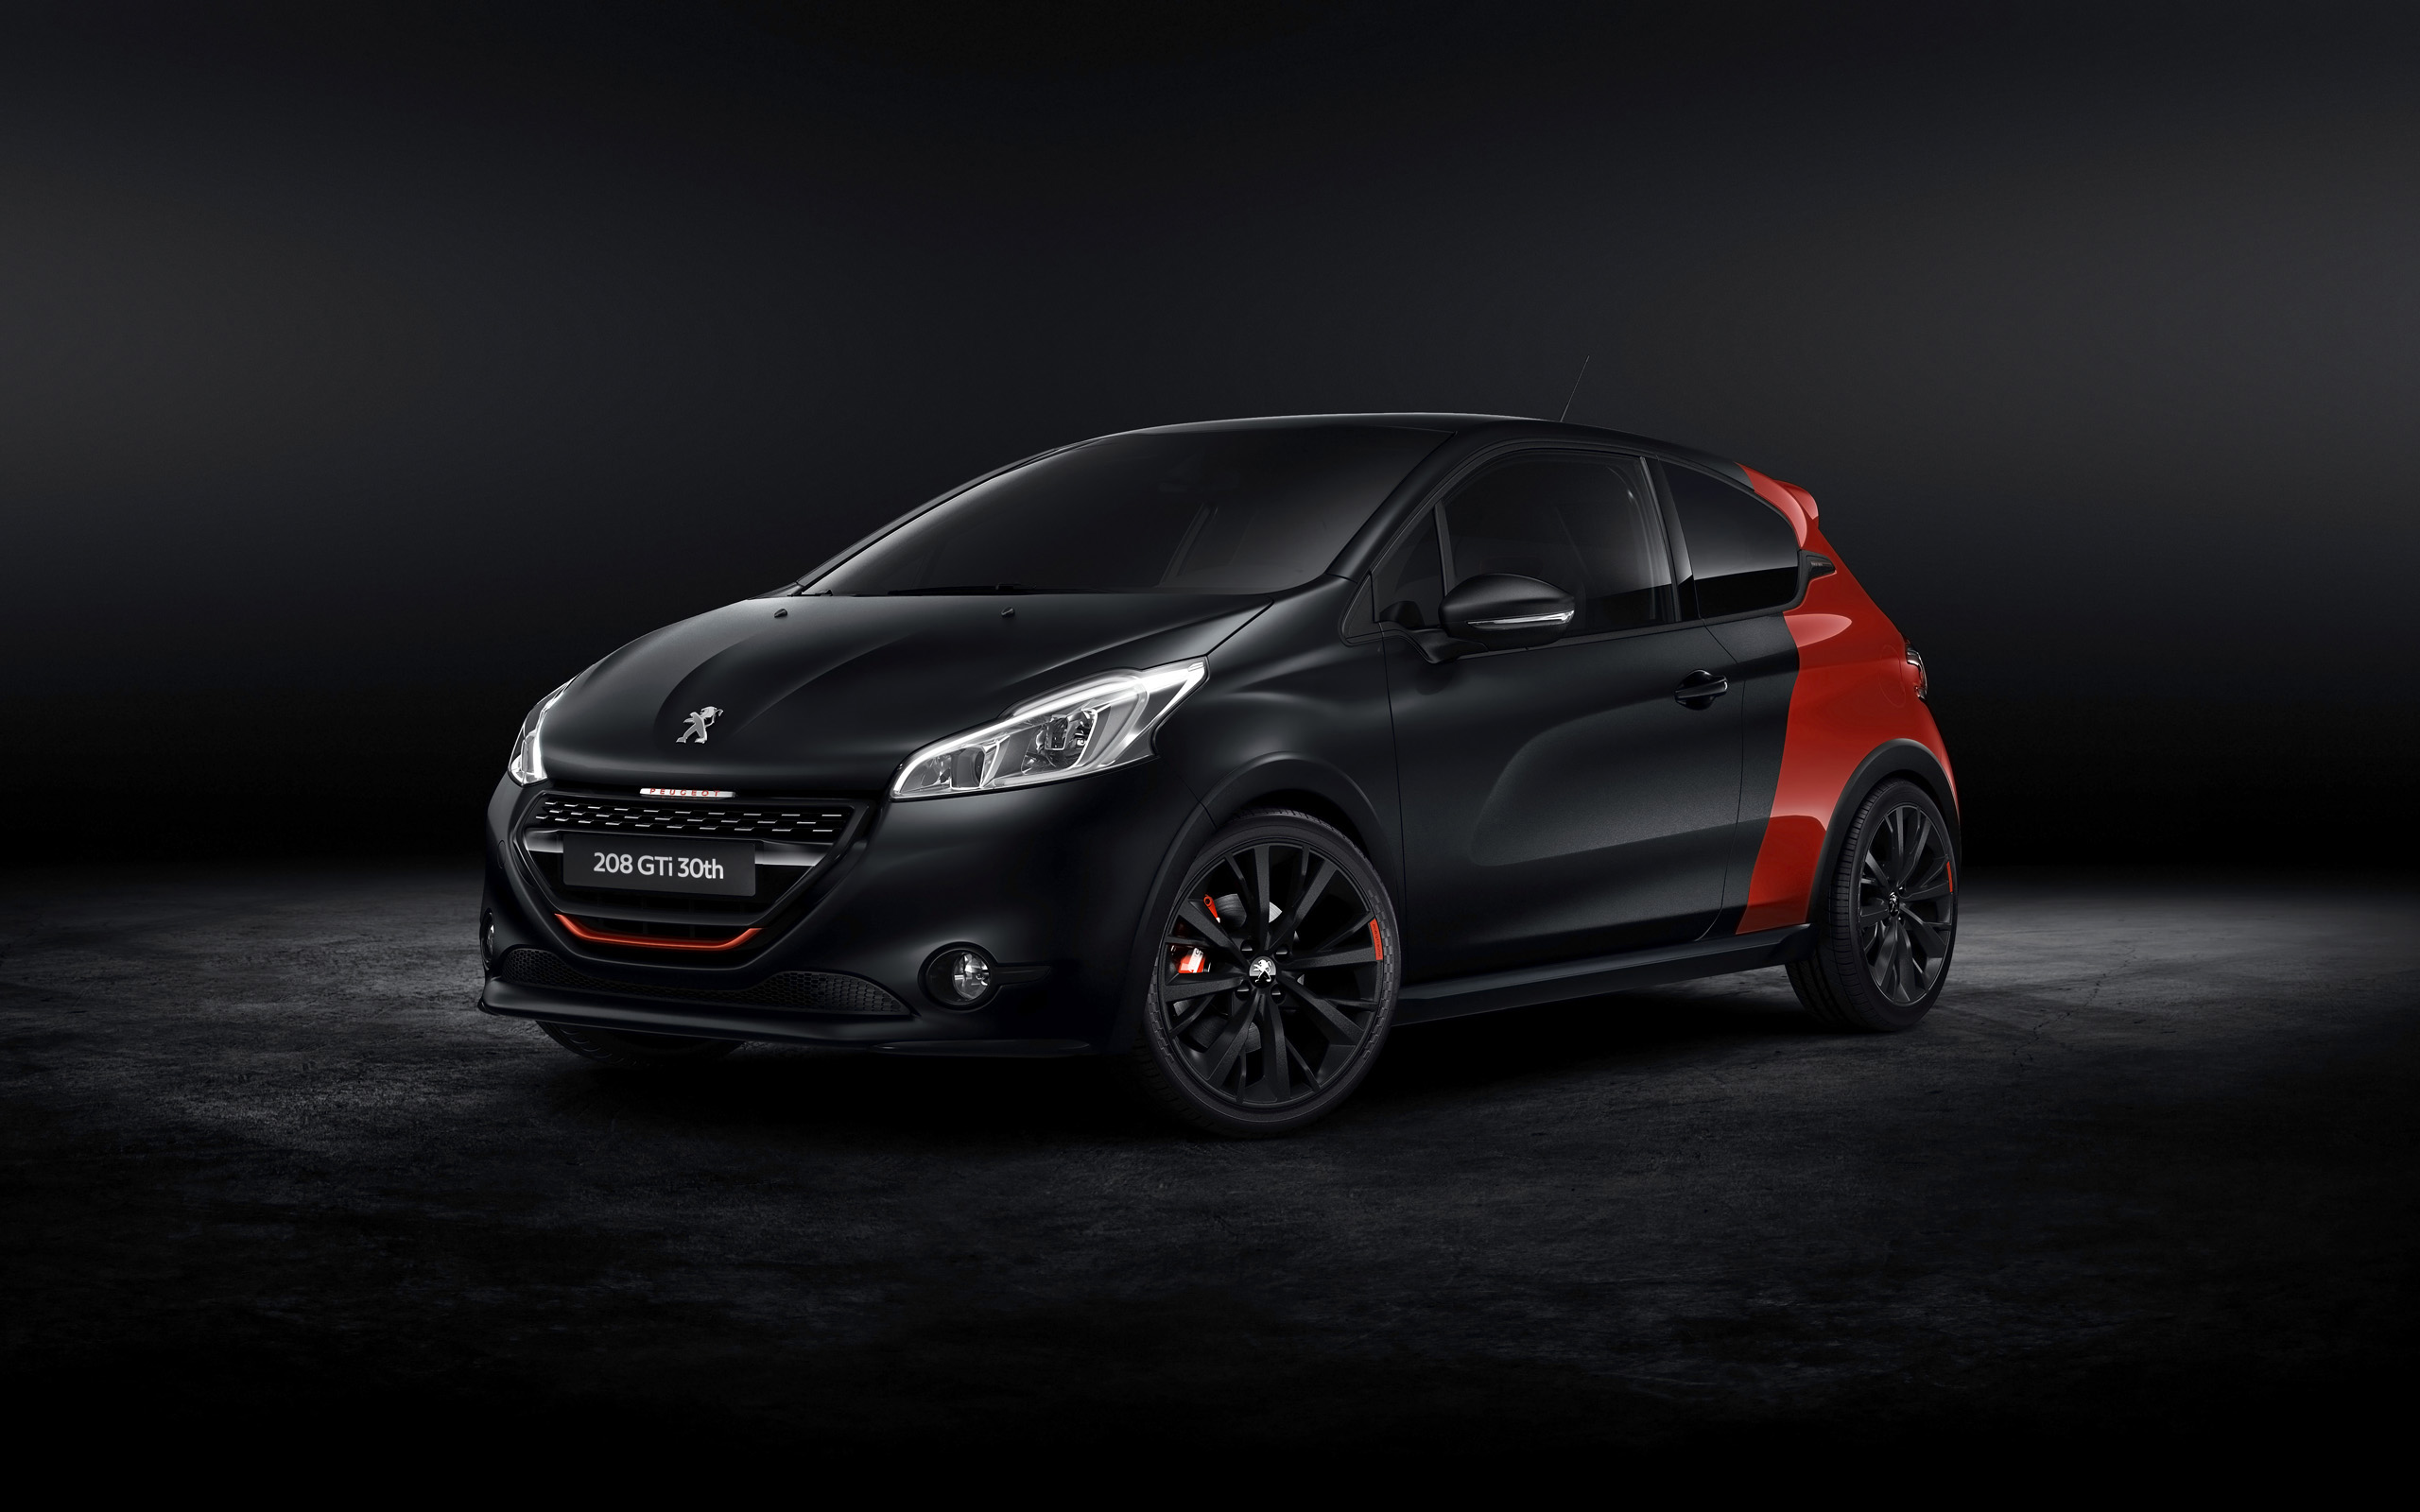 2015 peugeot 208 gti 30th anniversary wallpaper hd car wallpapers id 5023. Black Bedroom Furniture Sets. Home Design Ideas